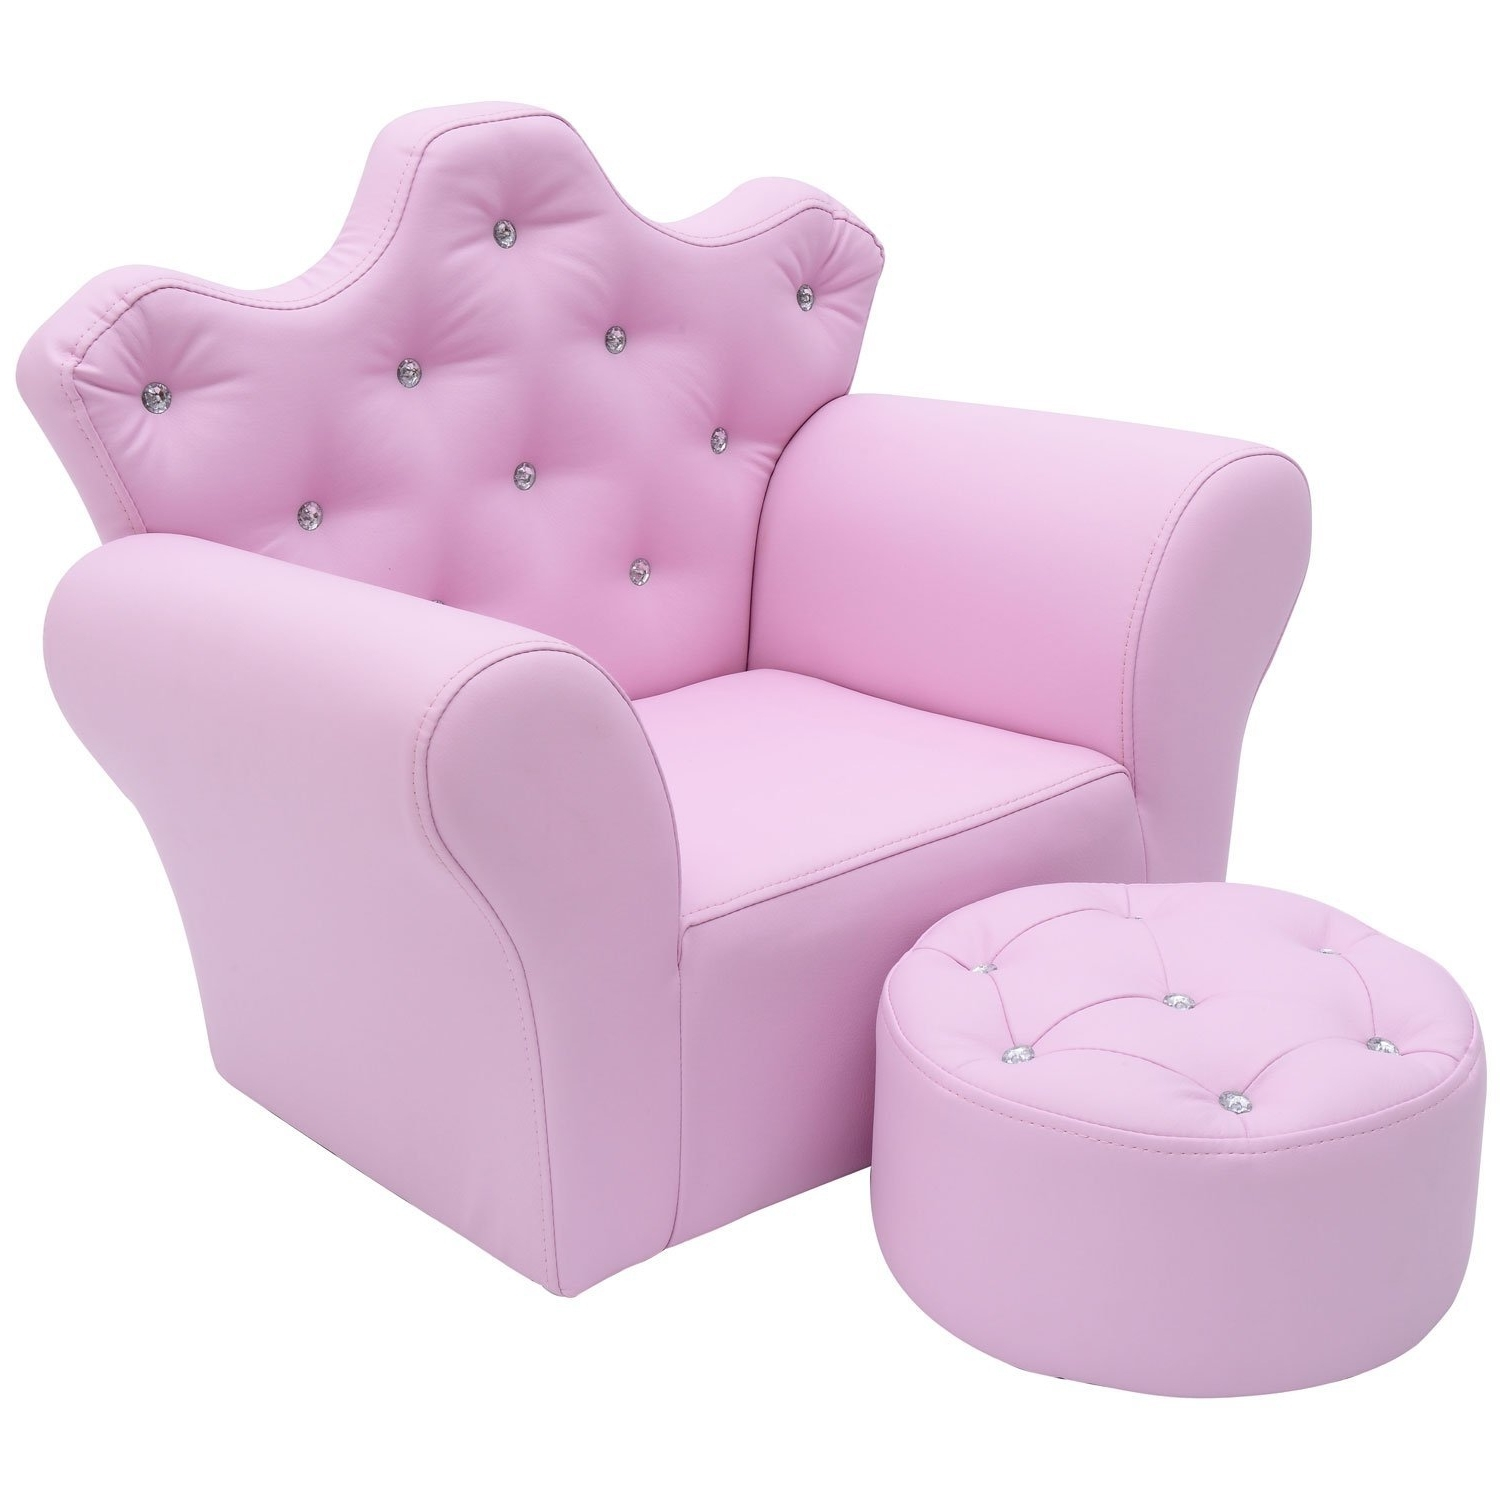 Famous Sofa : Sofa Chairs For Children Children's Flip Chair Children's In Childrens Sofas (View 8 of 20)